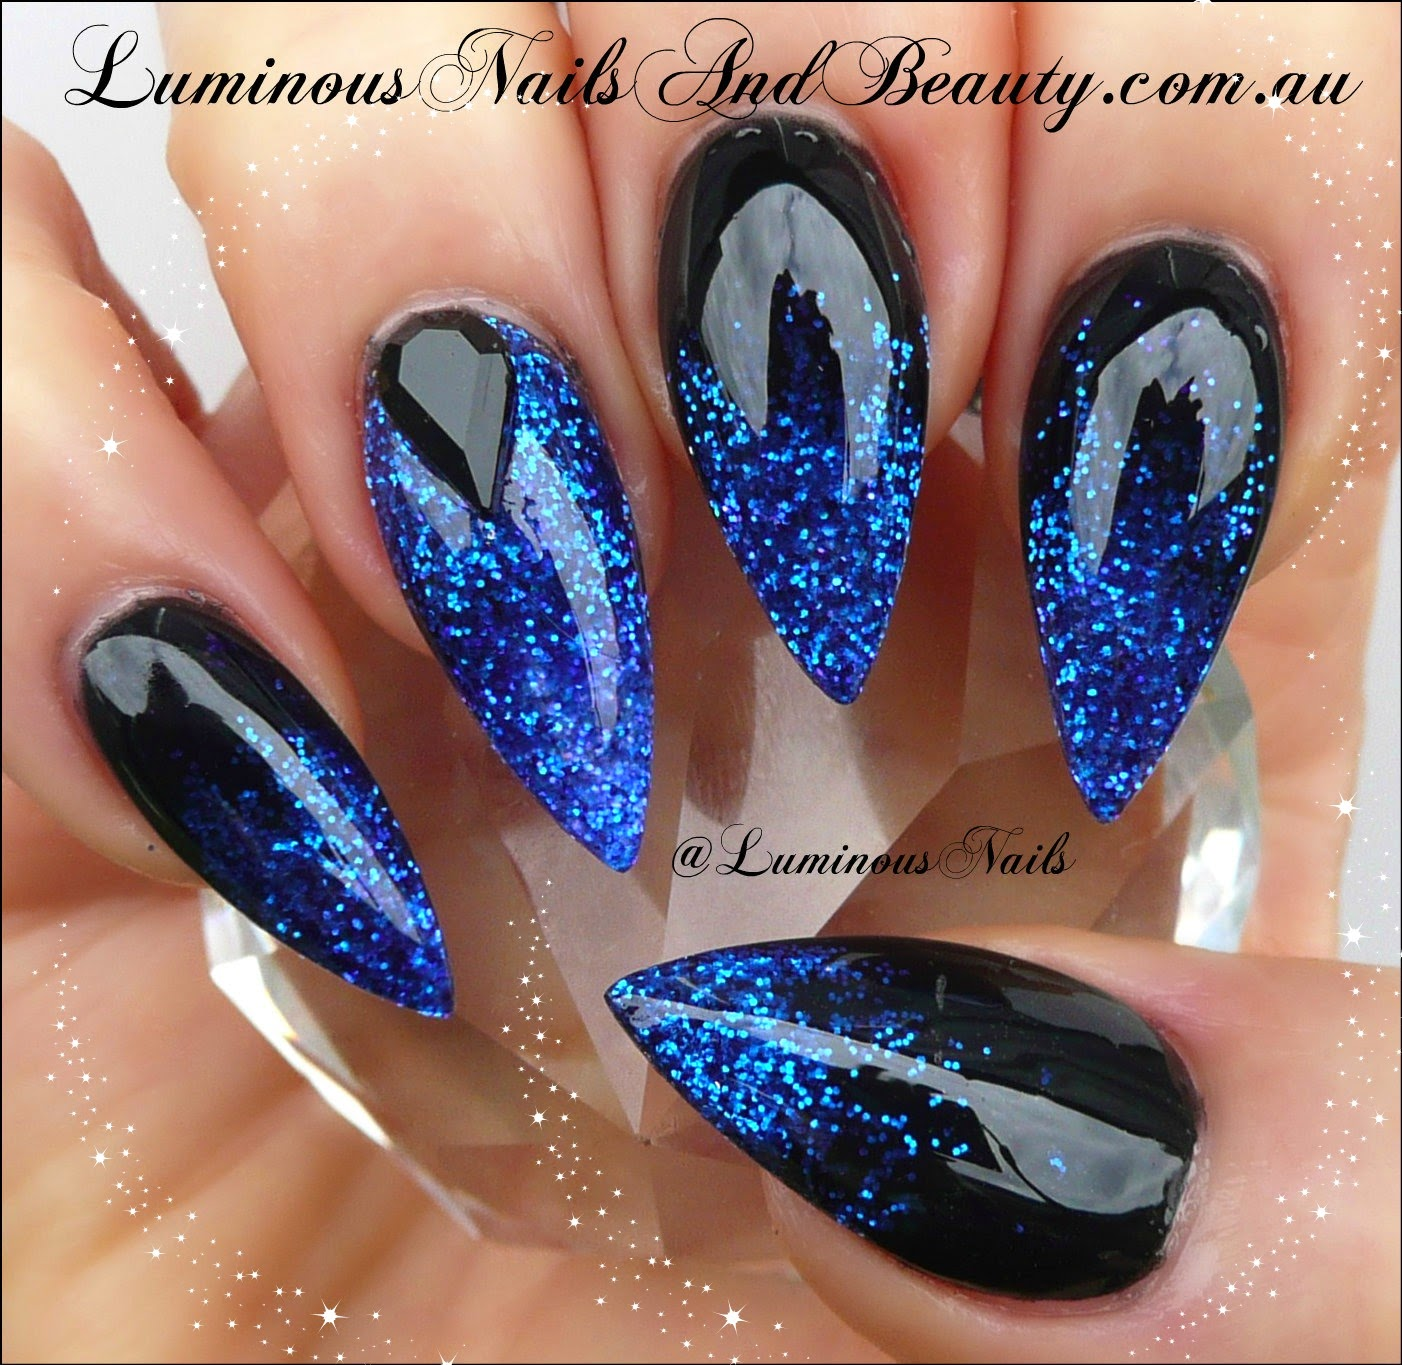 Royal blue and silver nail designs prinsesfo Images